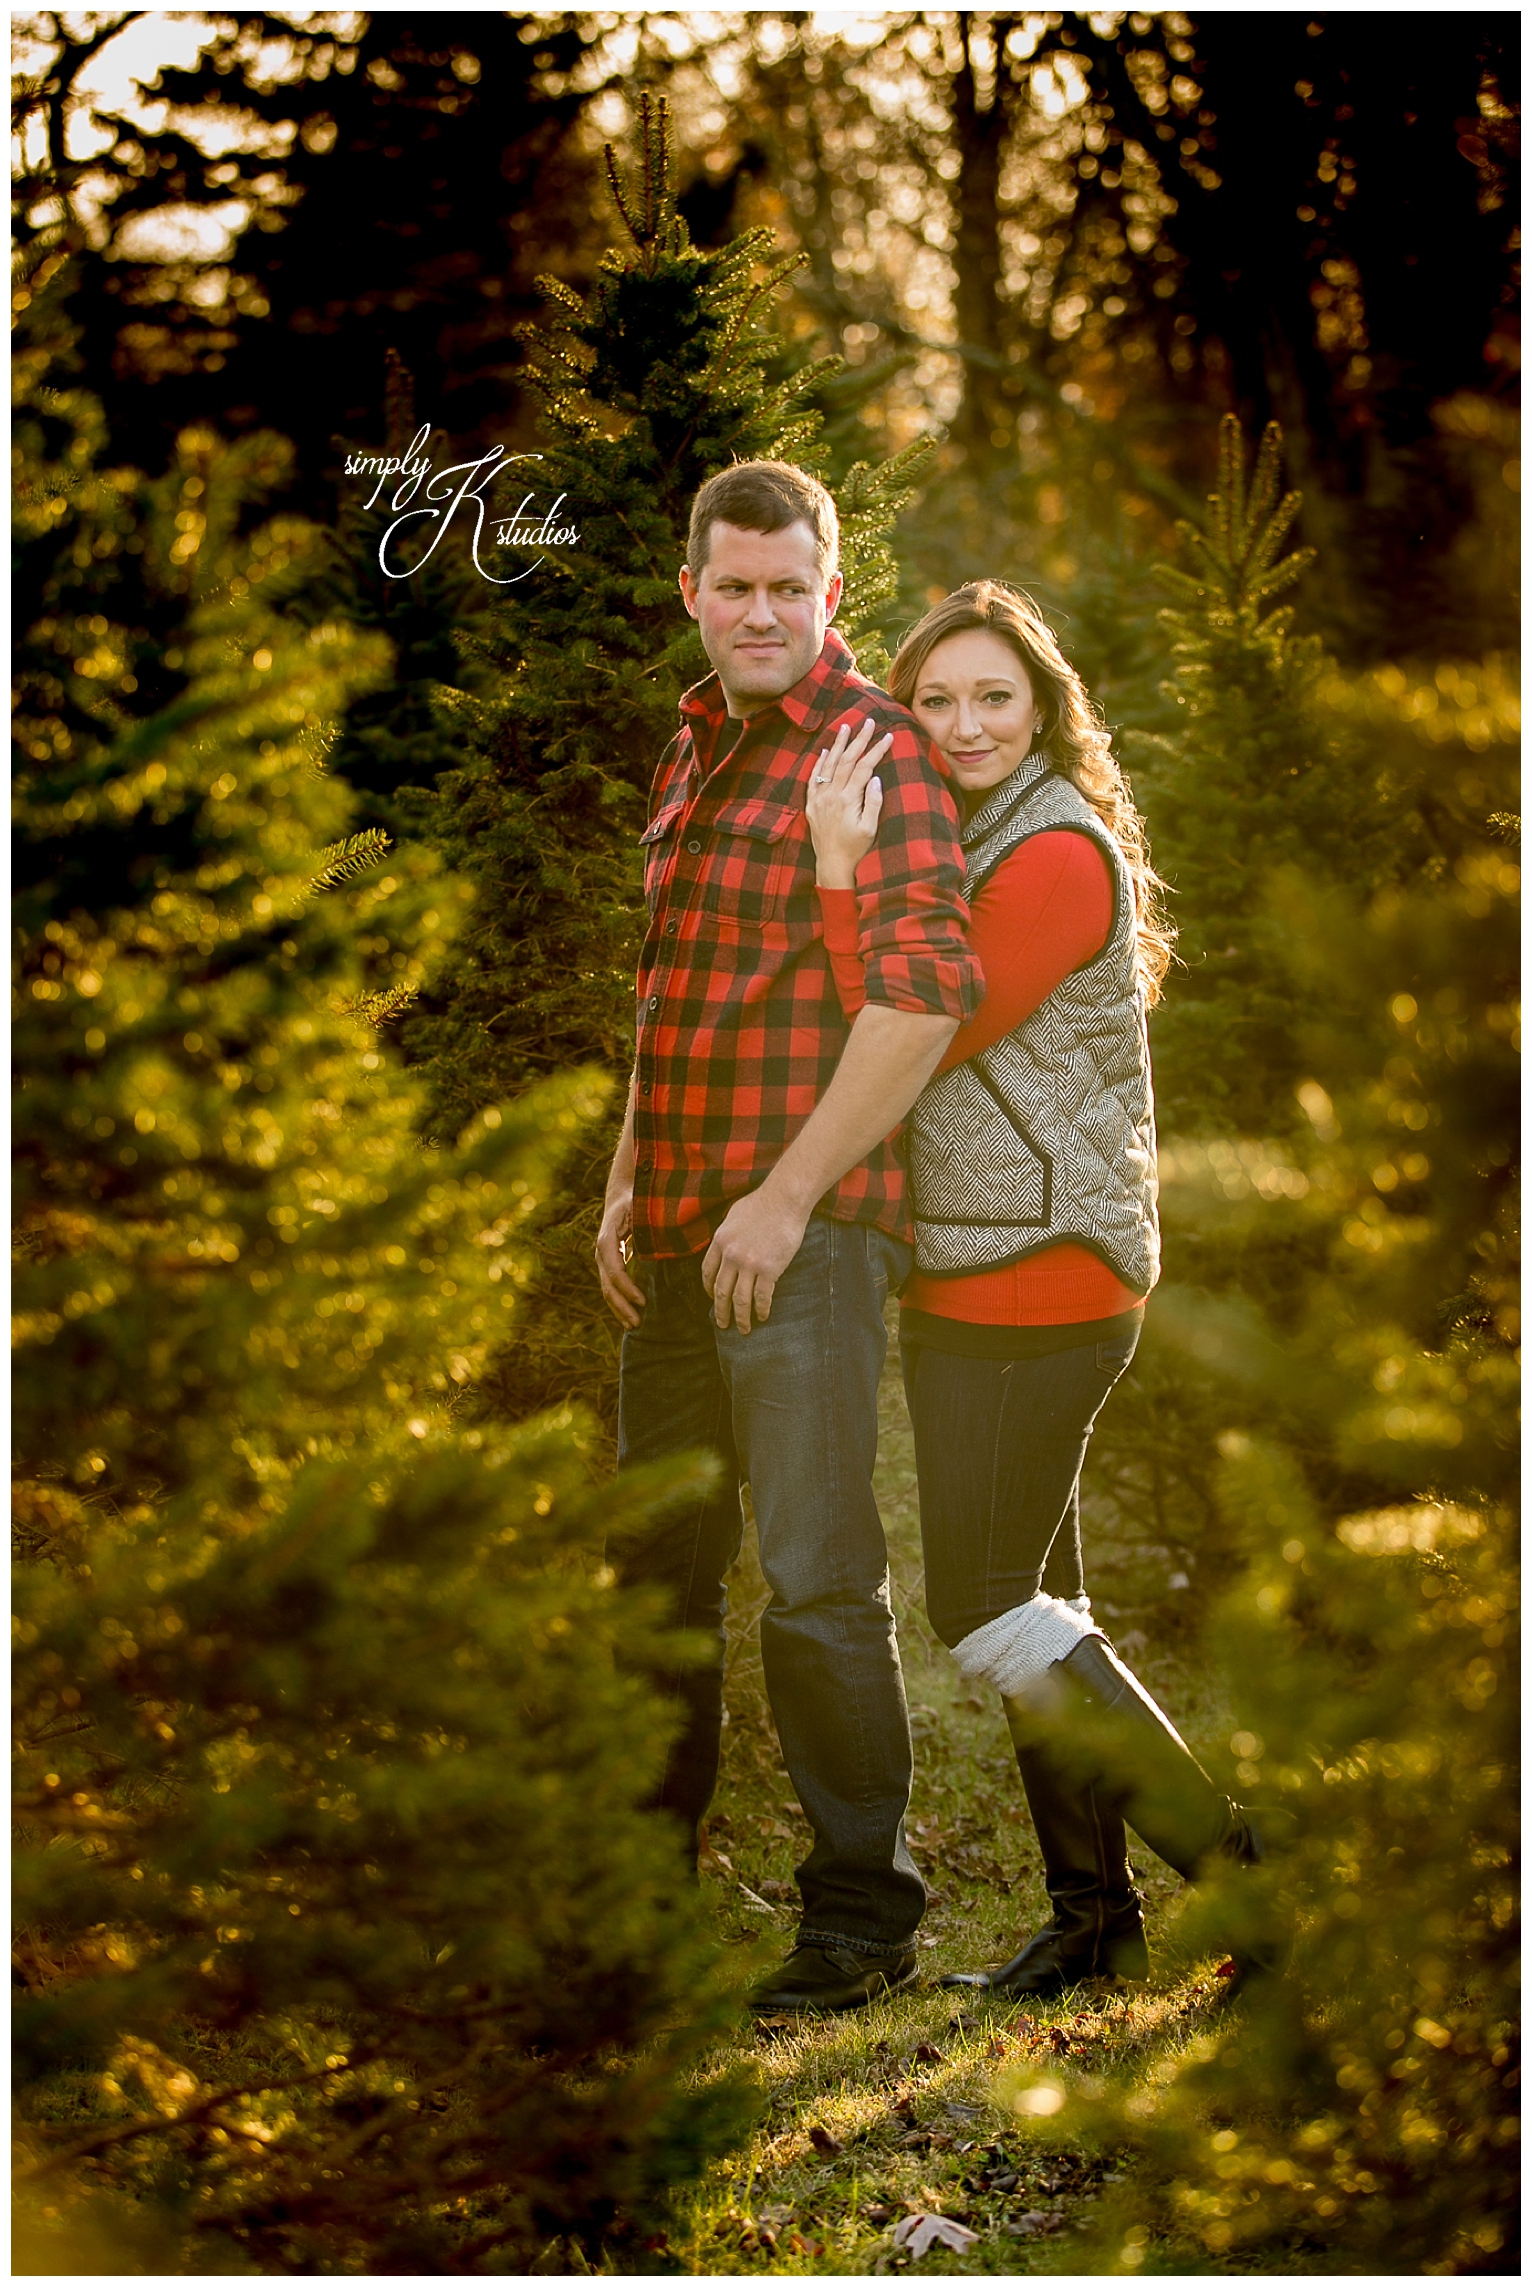 Simply K Studios Engagement Session.jpg